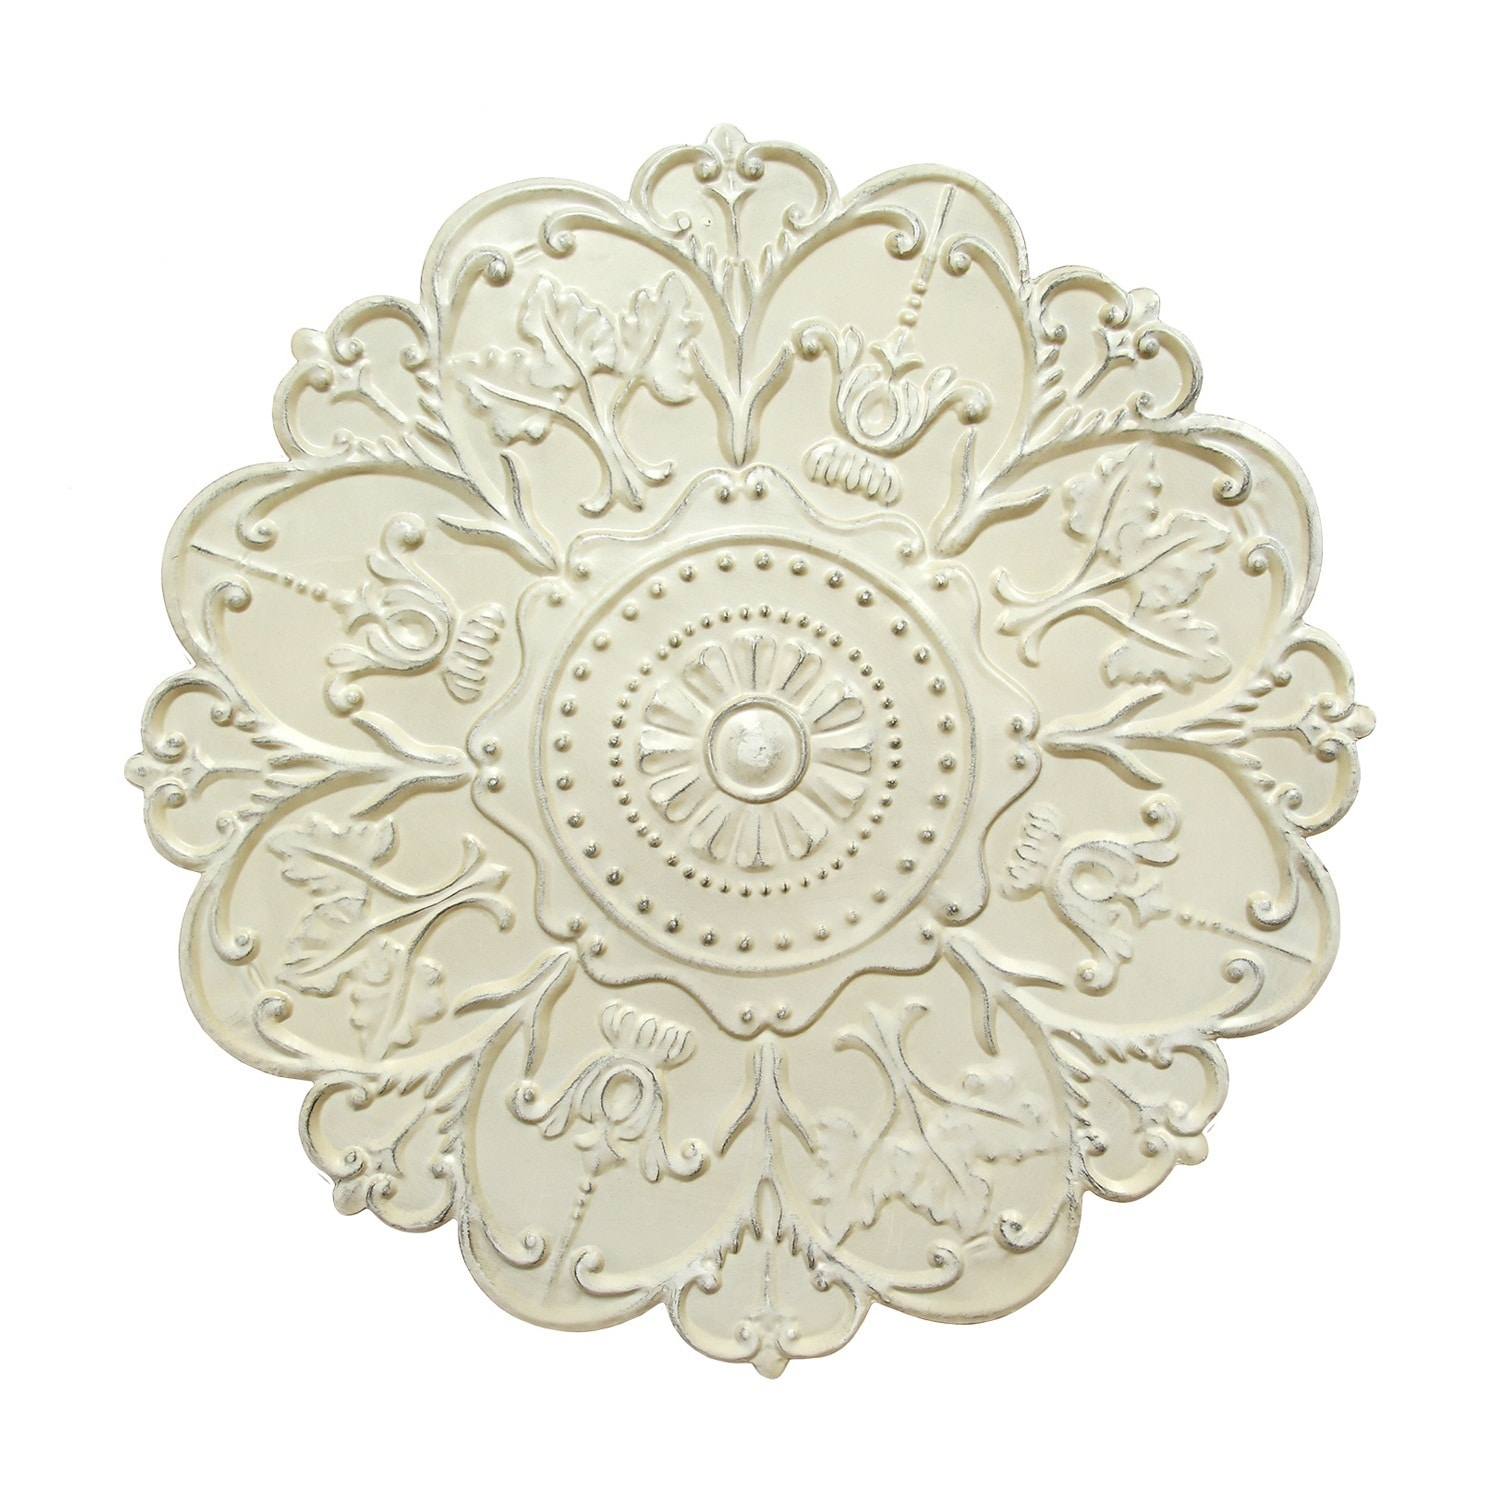 Medallion Wall Art Floral Accent Round Metal Home Decor Shabby White Finish